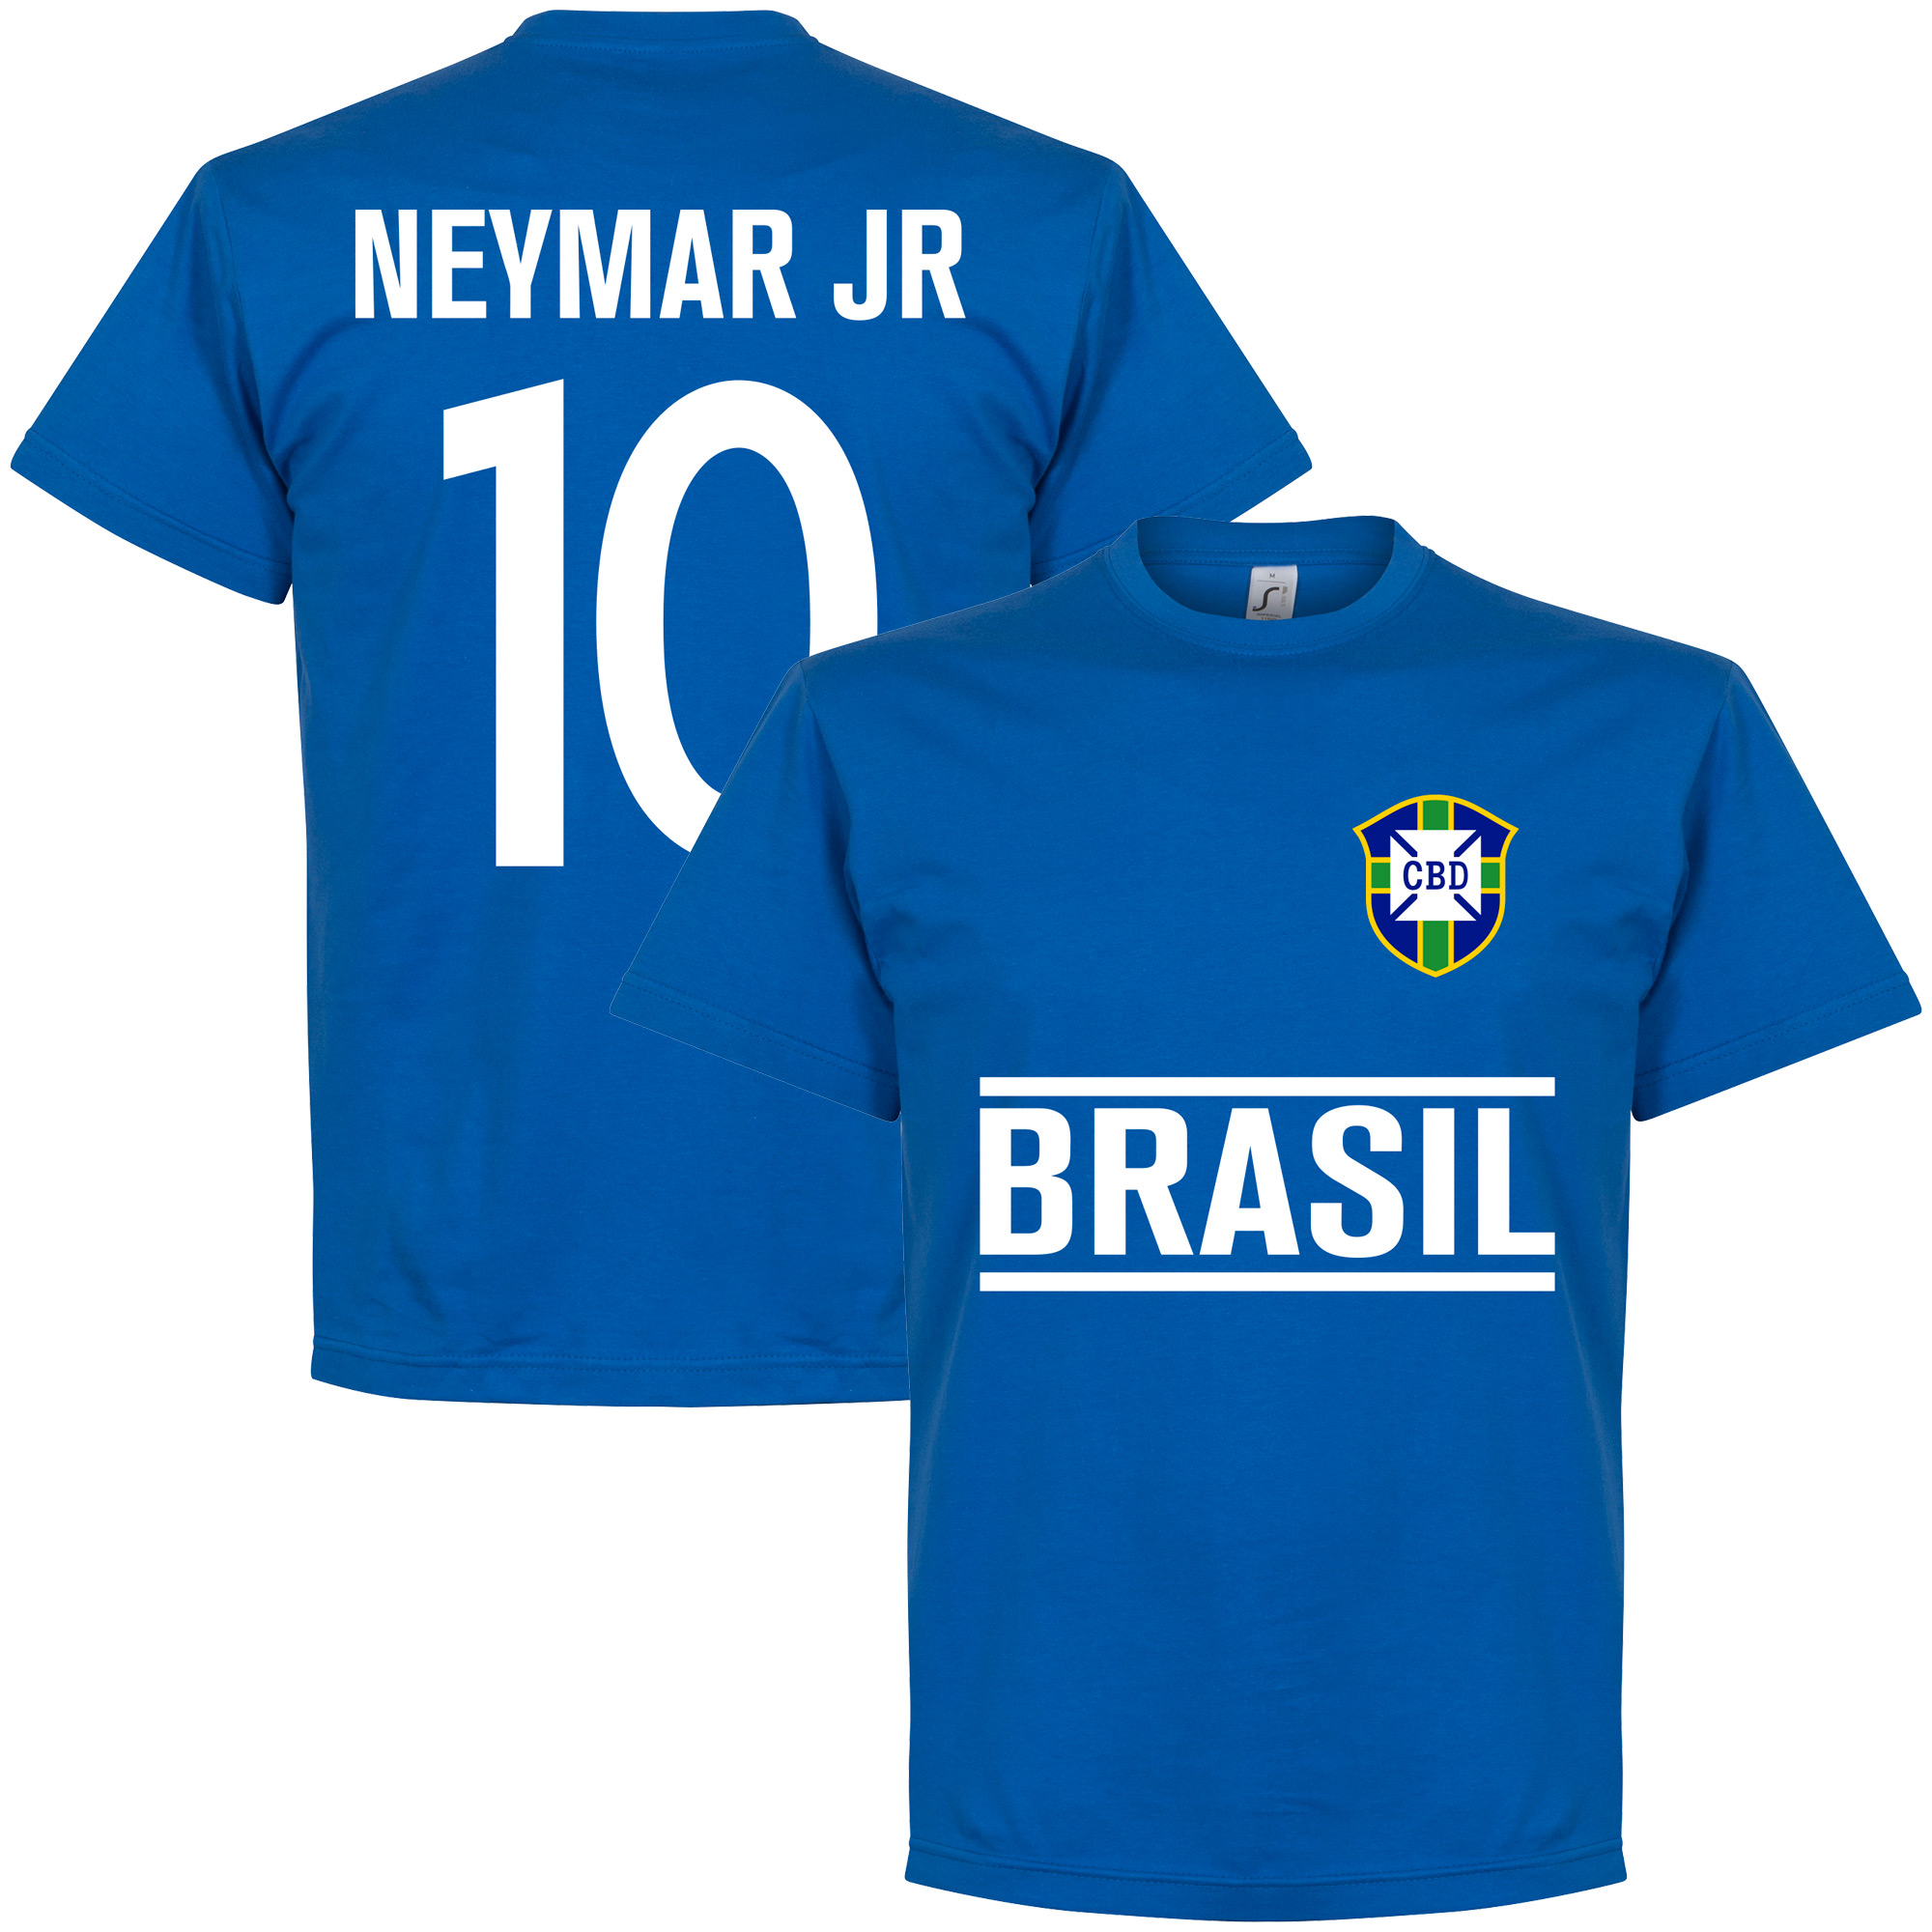 Brasil Neymar Jr Team Tee - Royal - M